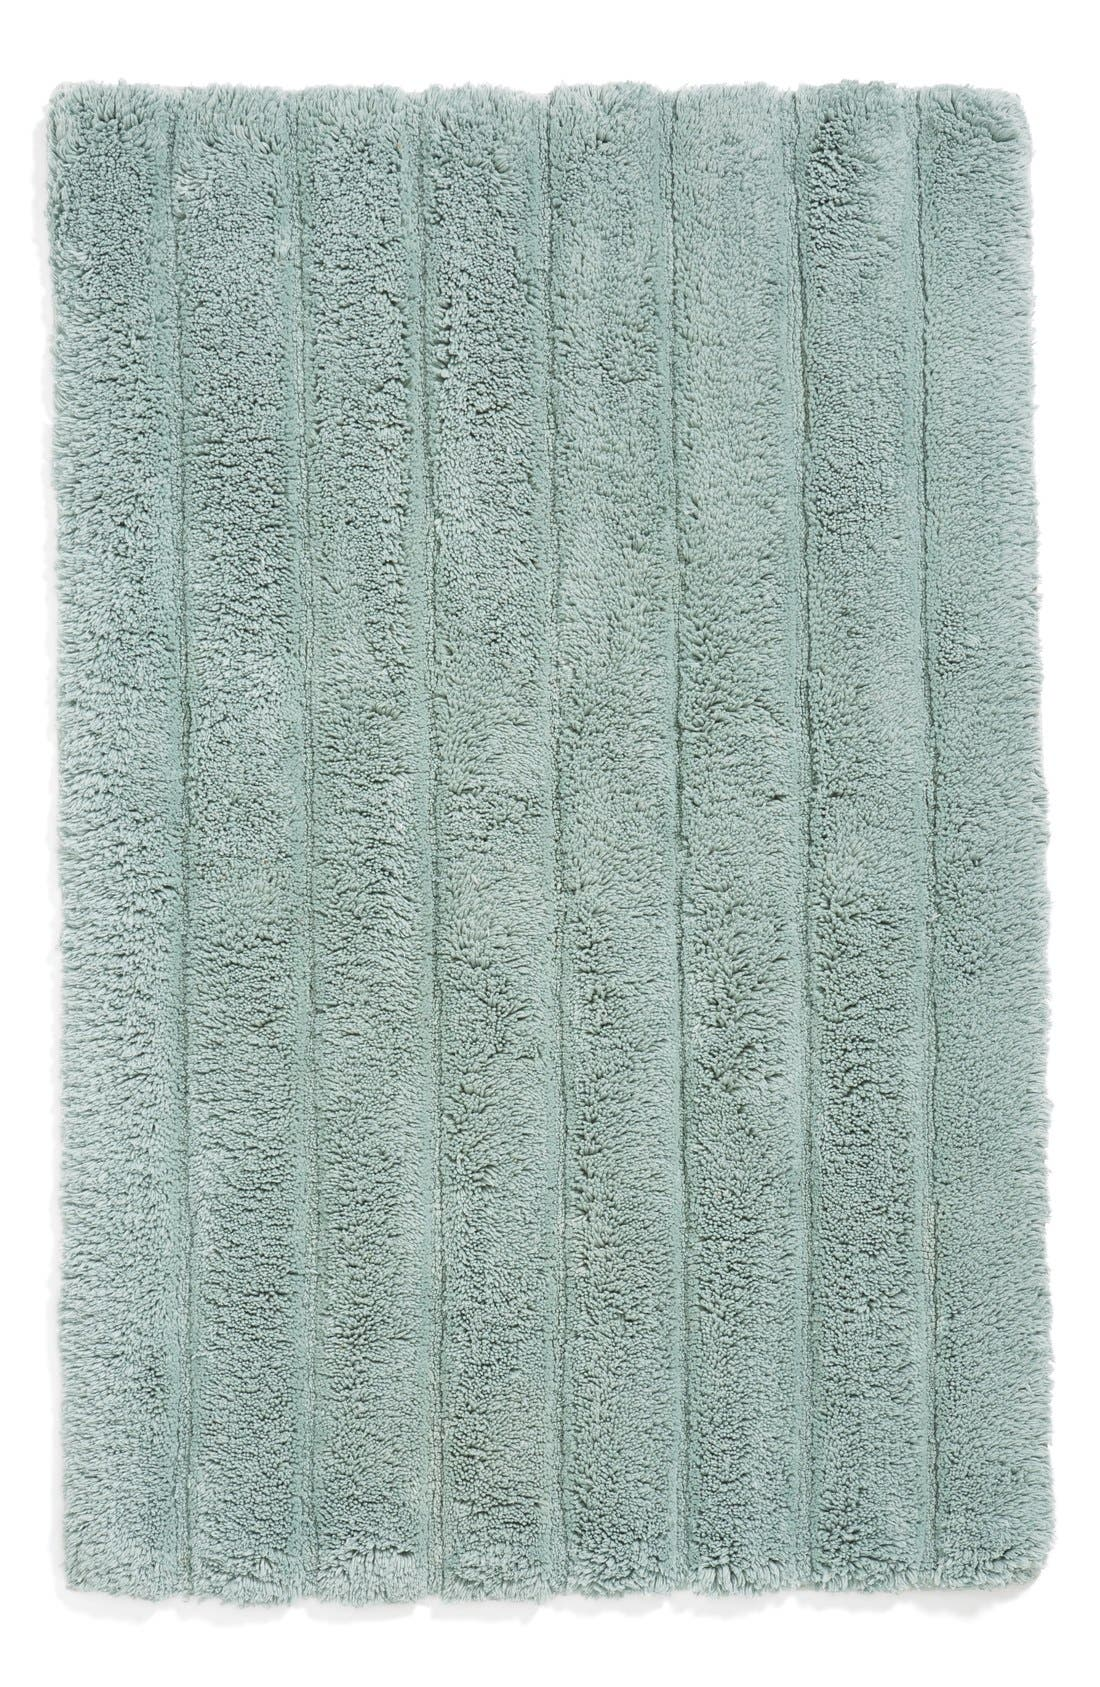 Ribbed Velour Bath Rug,                             Main thumbnail 7, color,